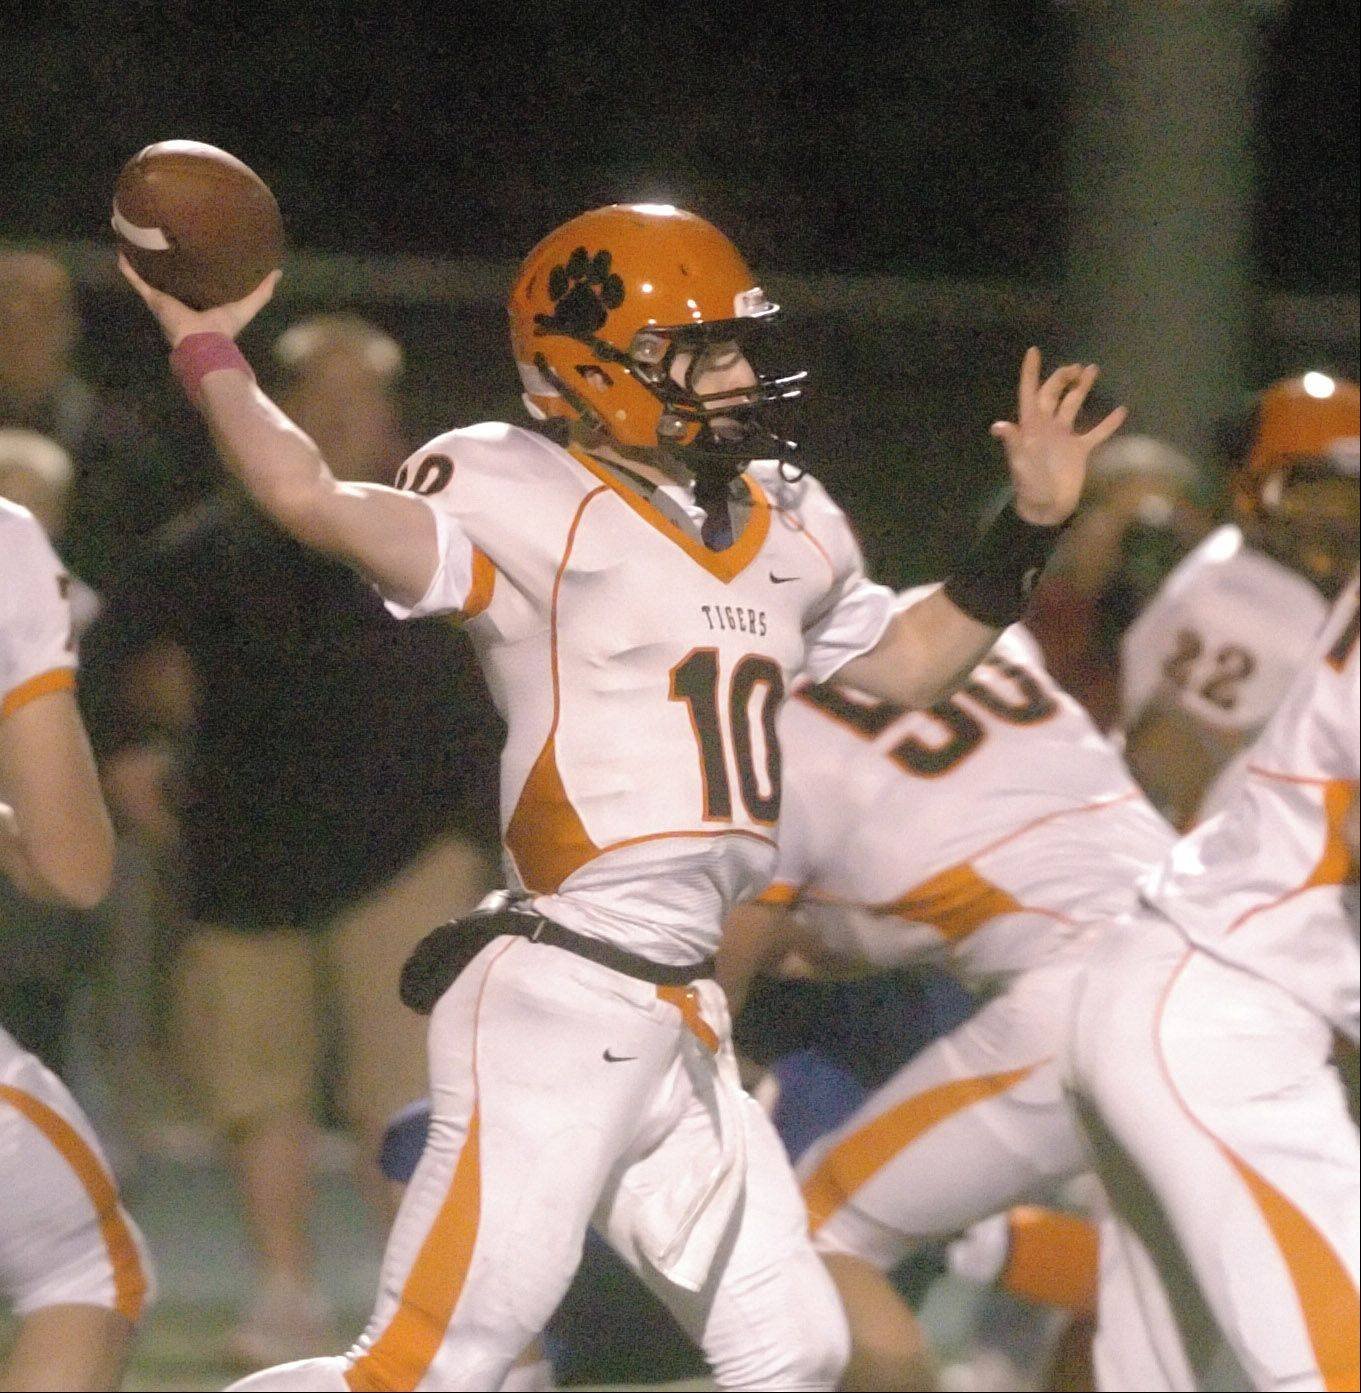 Ryan Graham of Wheaton Warrenville South fires a pass.